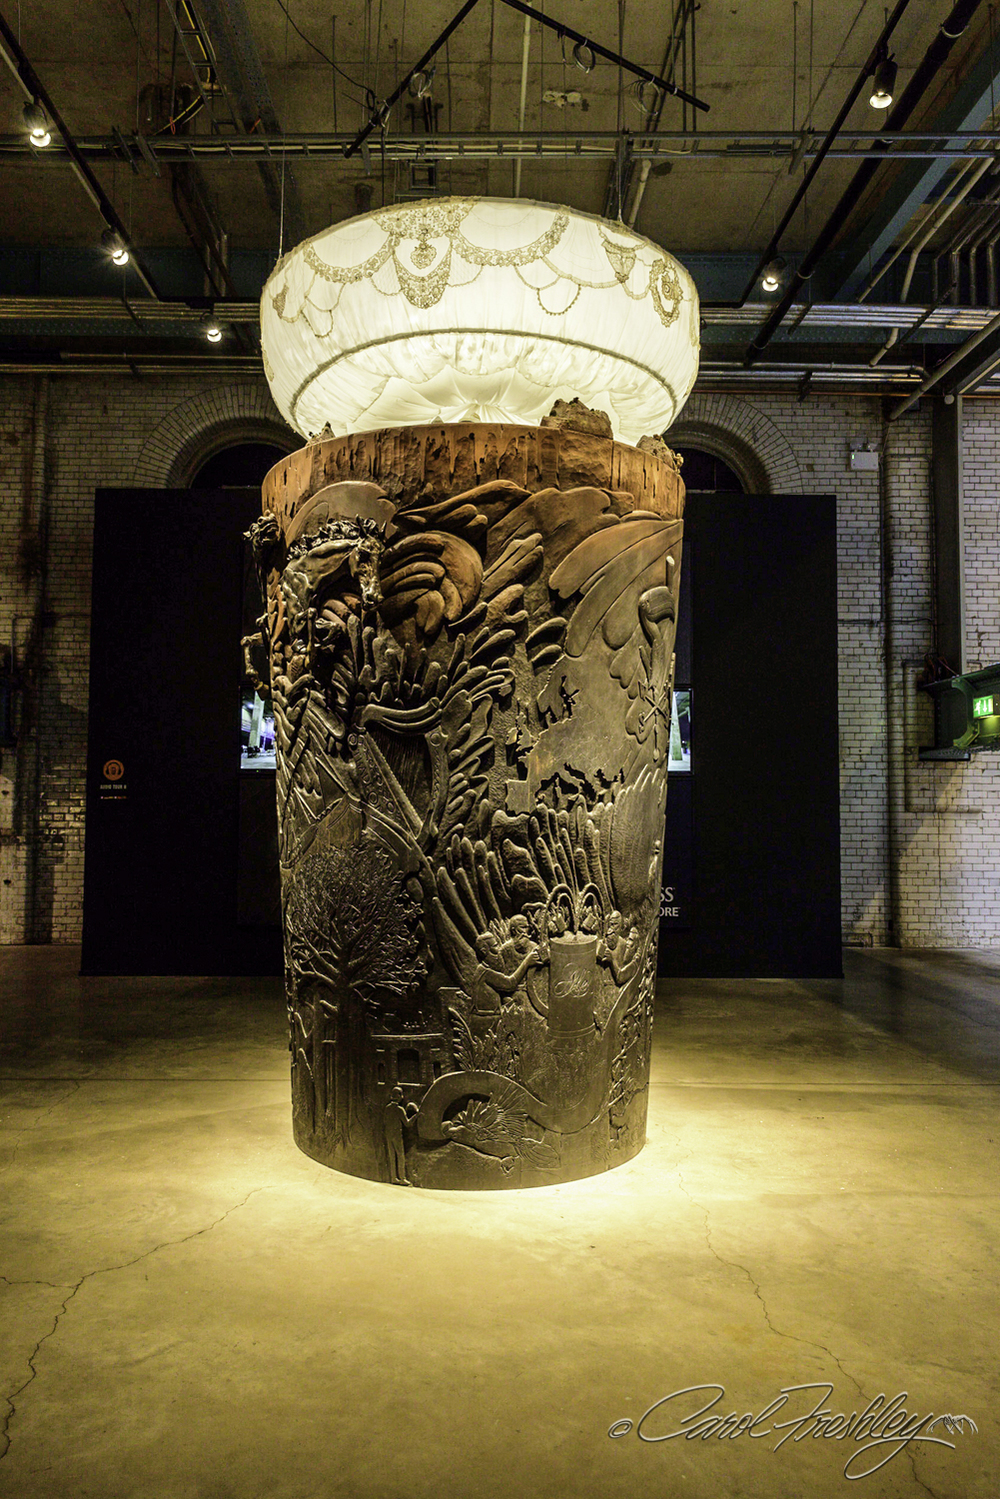 This is a 12 foot tall, 2 ton wooden sculpture created to look like a pint of Guinness.  There is a great video on site showing how it was designed and built.